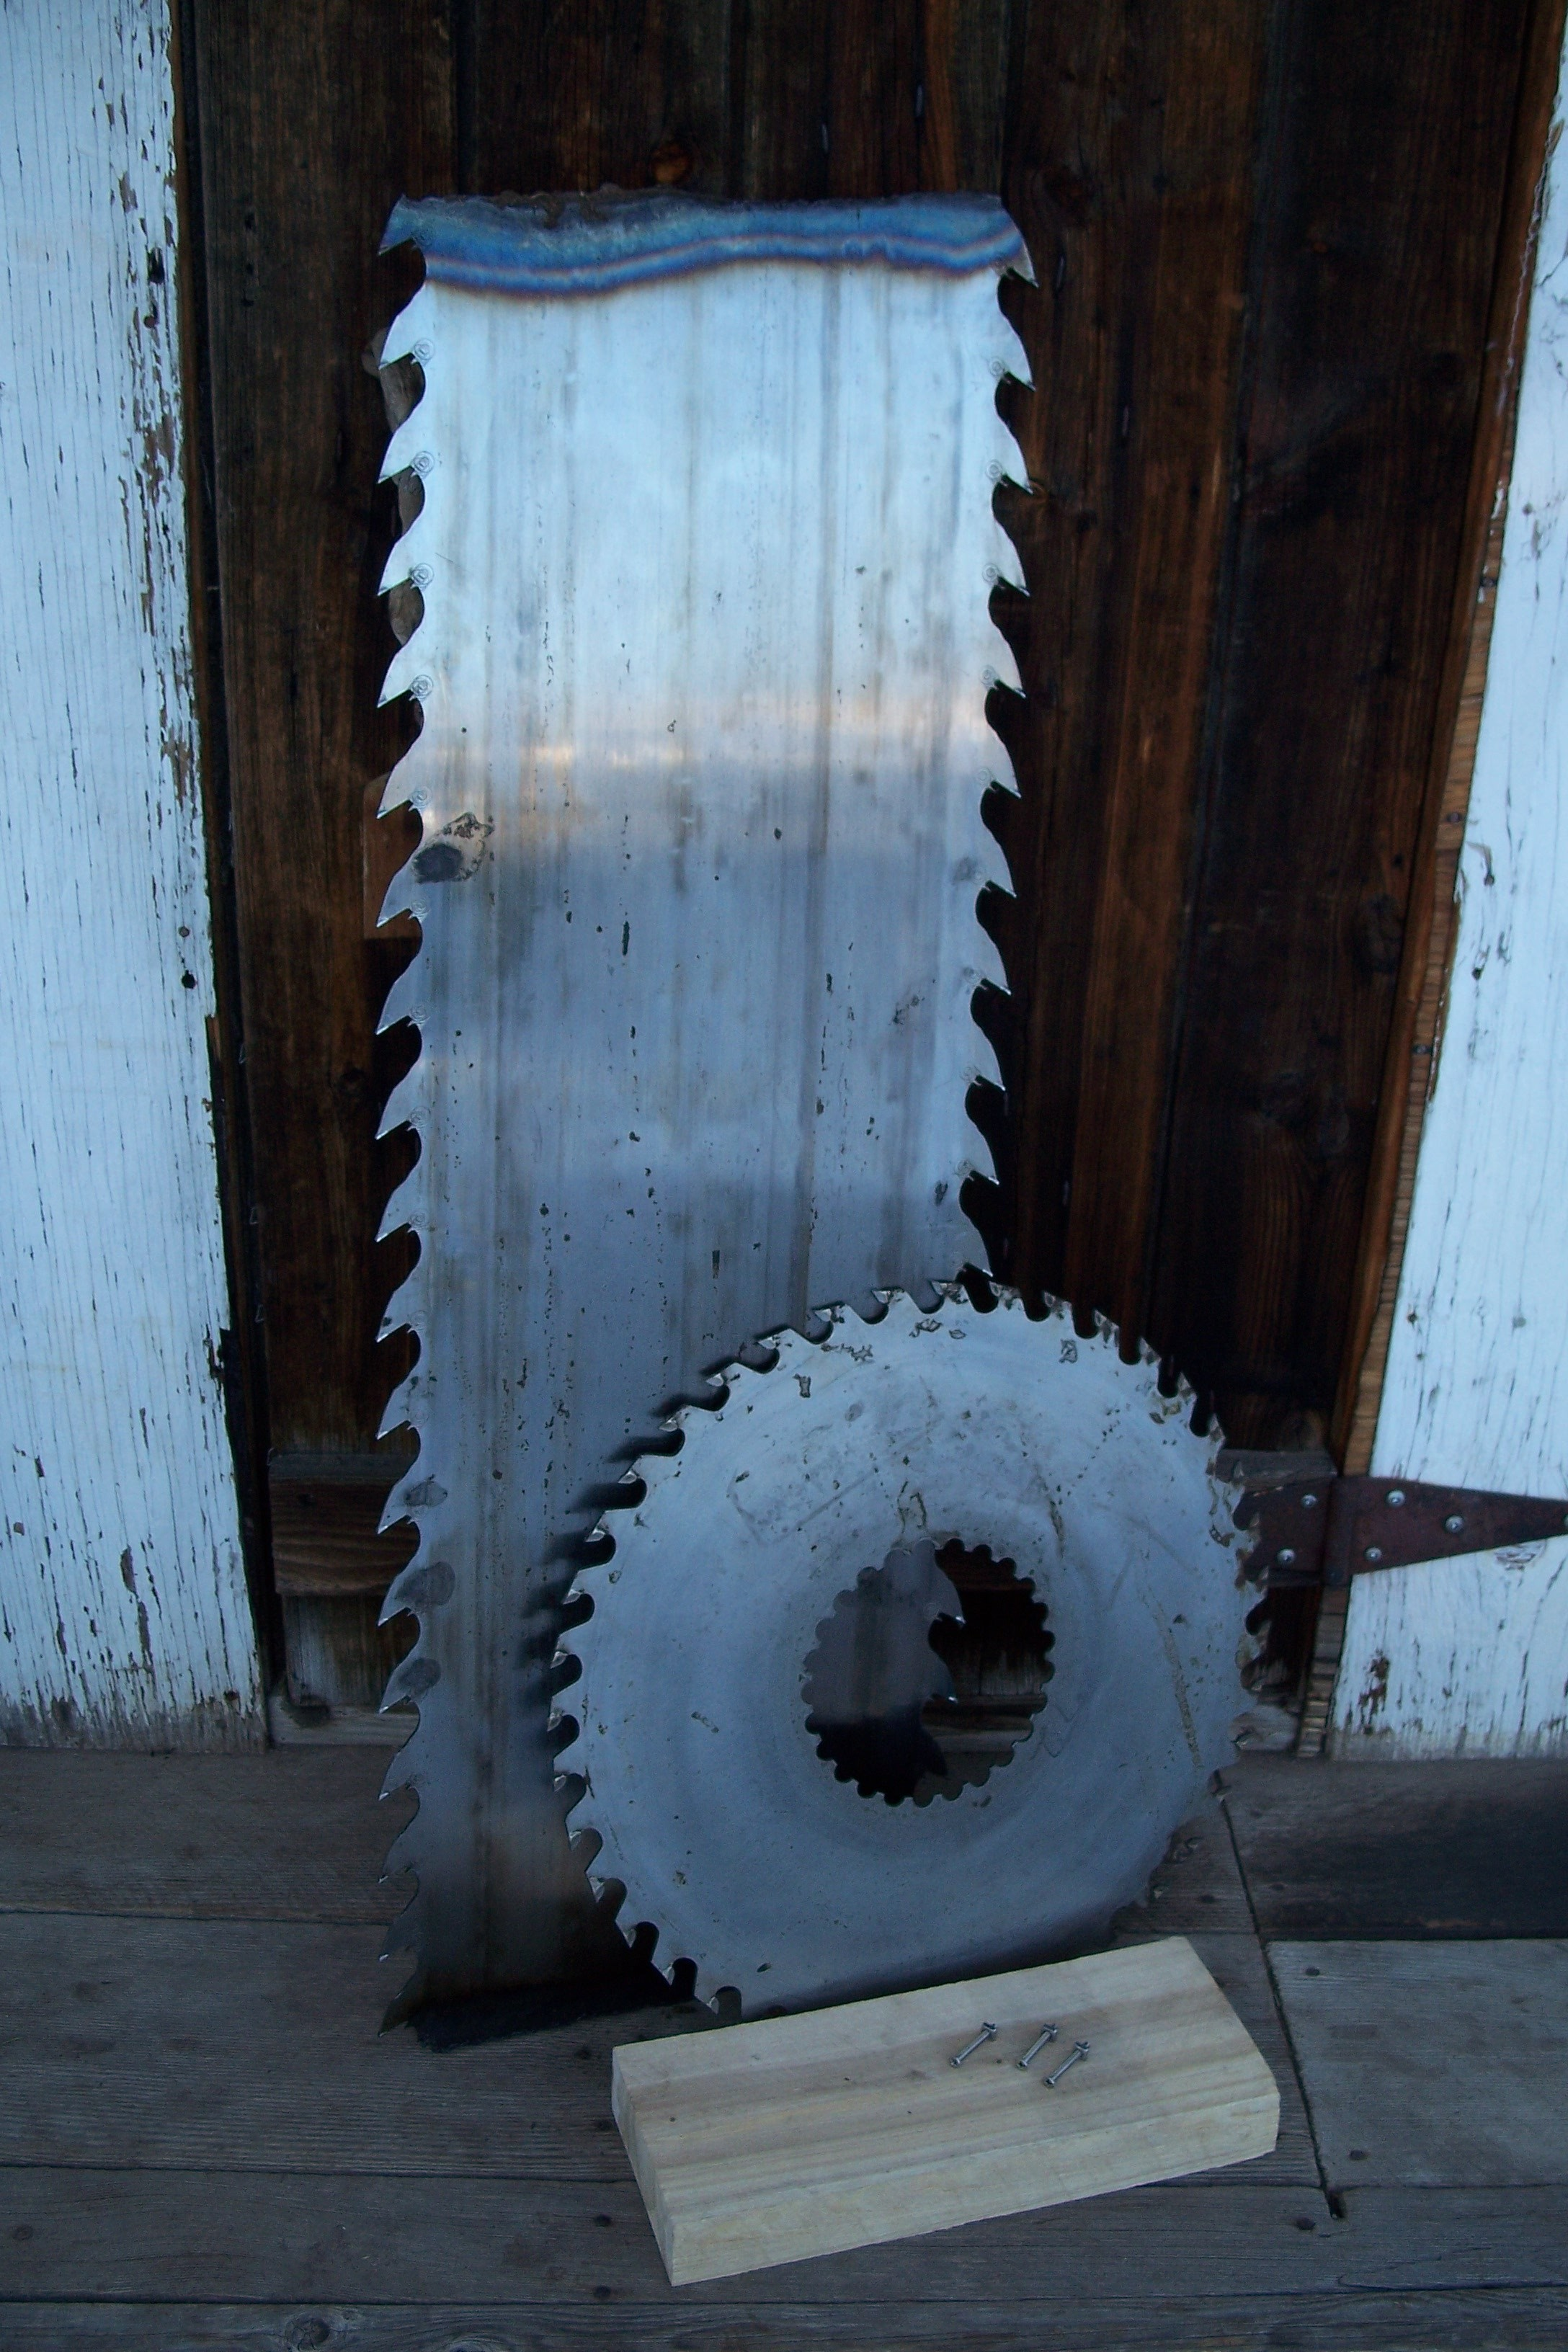 Recovered band saw blade and gang saw from lumber mills in British Columbia.